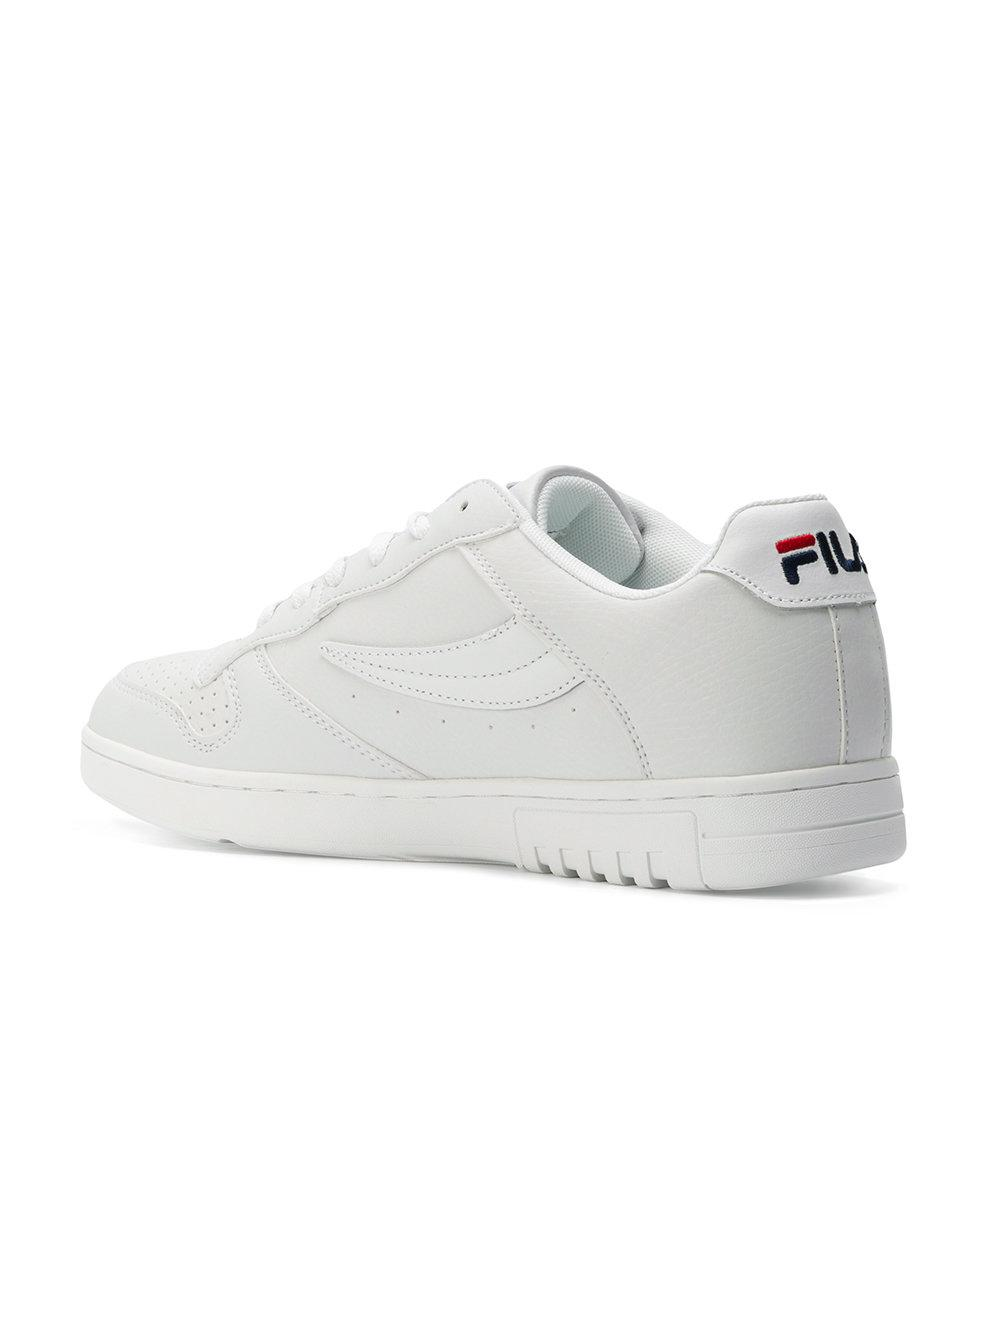 cbffc1aec355 For For Baskets Low Men Sneakers White Lyst Fila Fx100 In In In CqwTx06